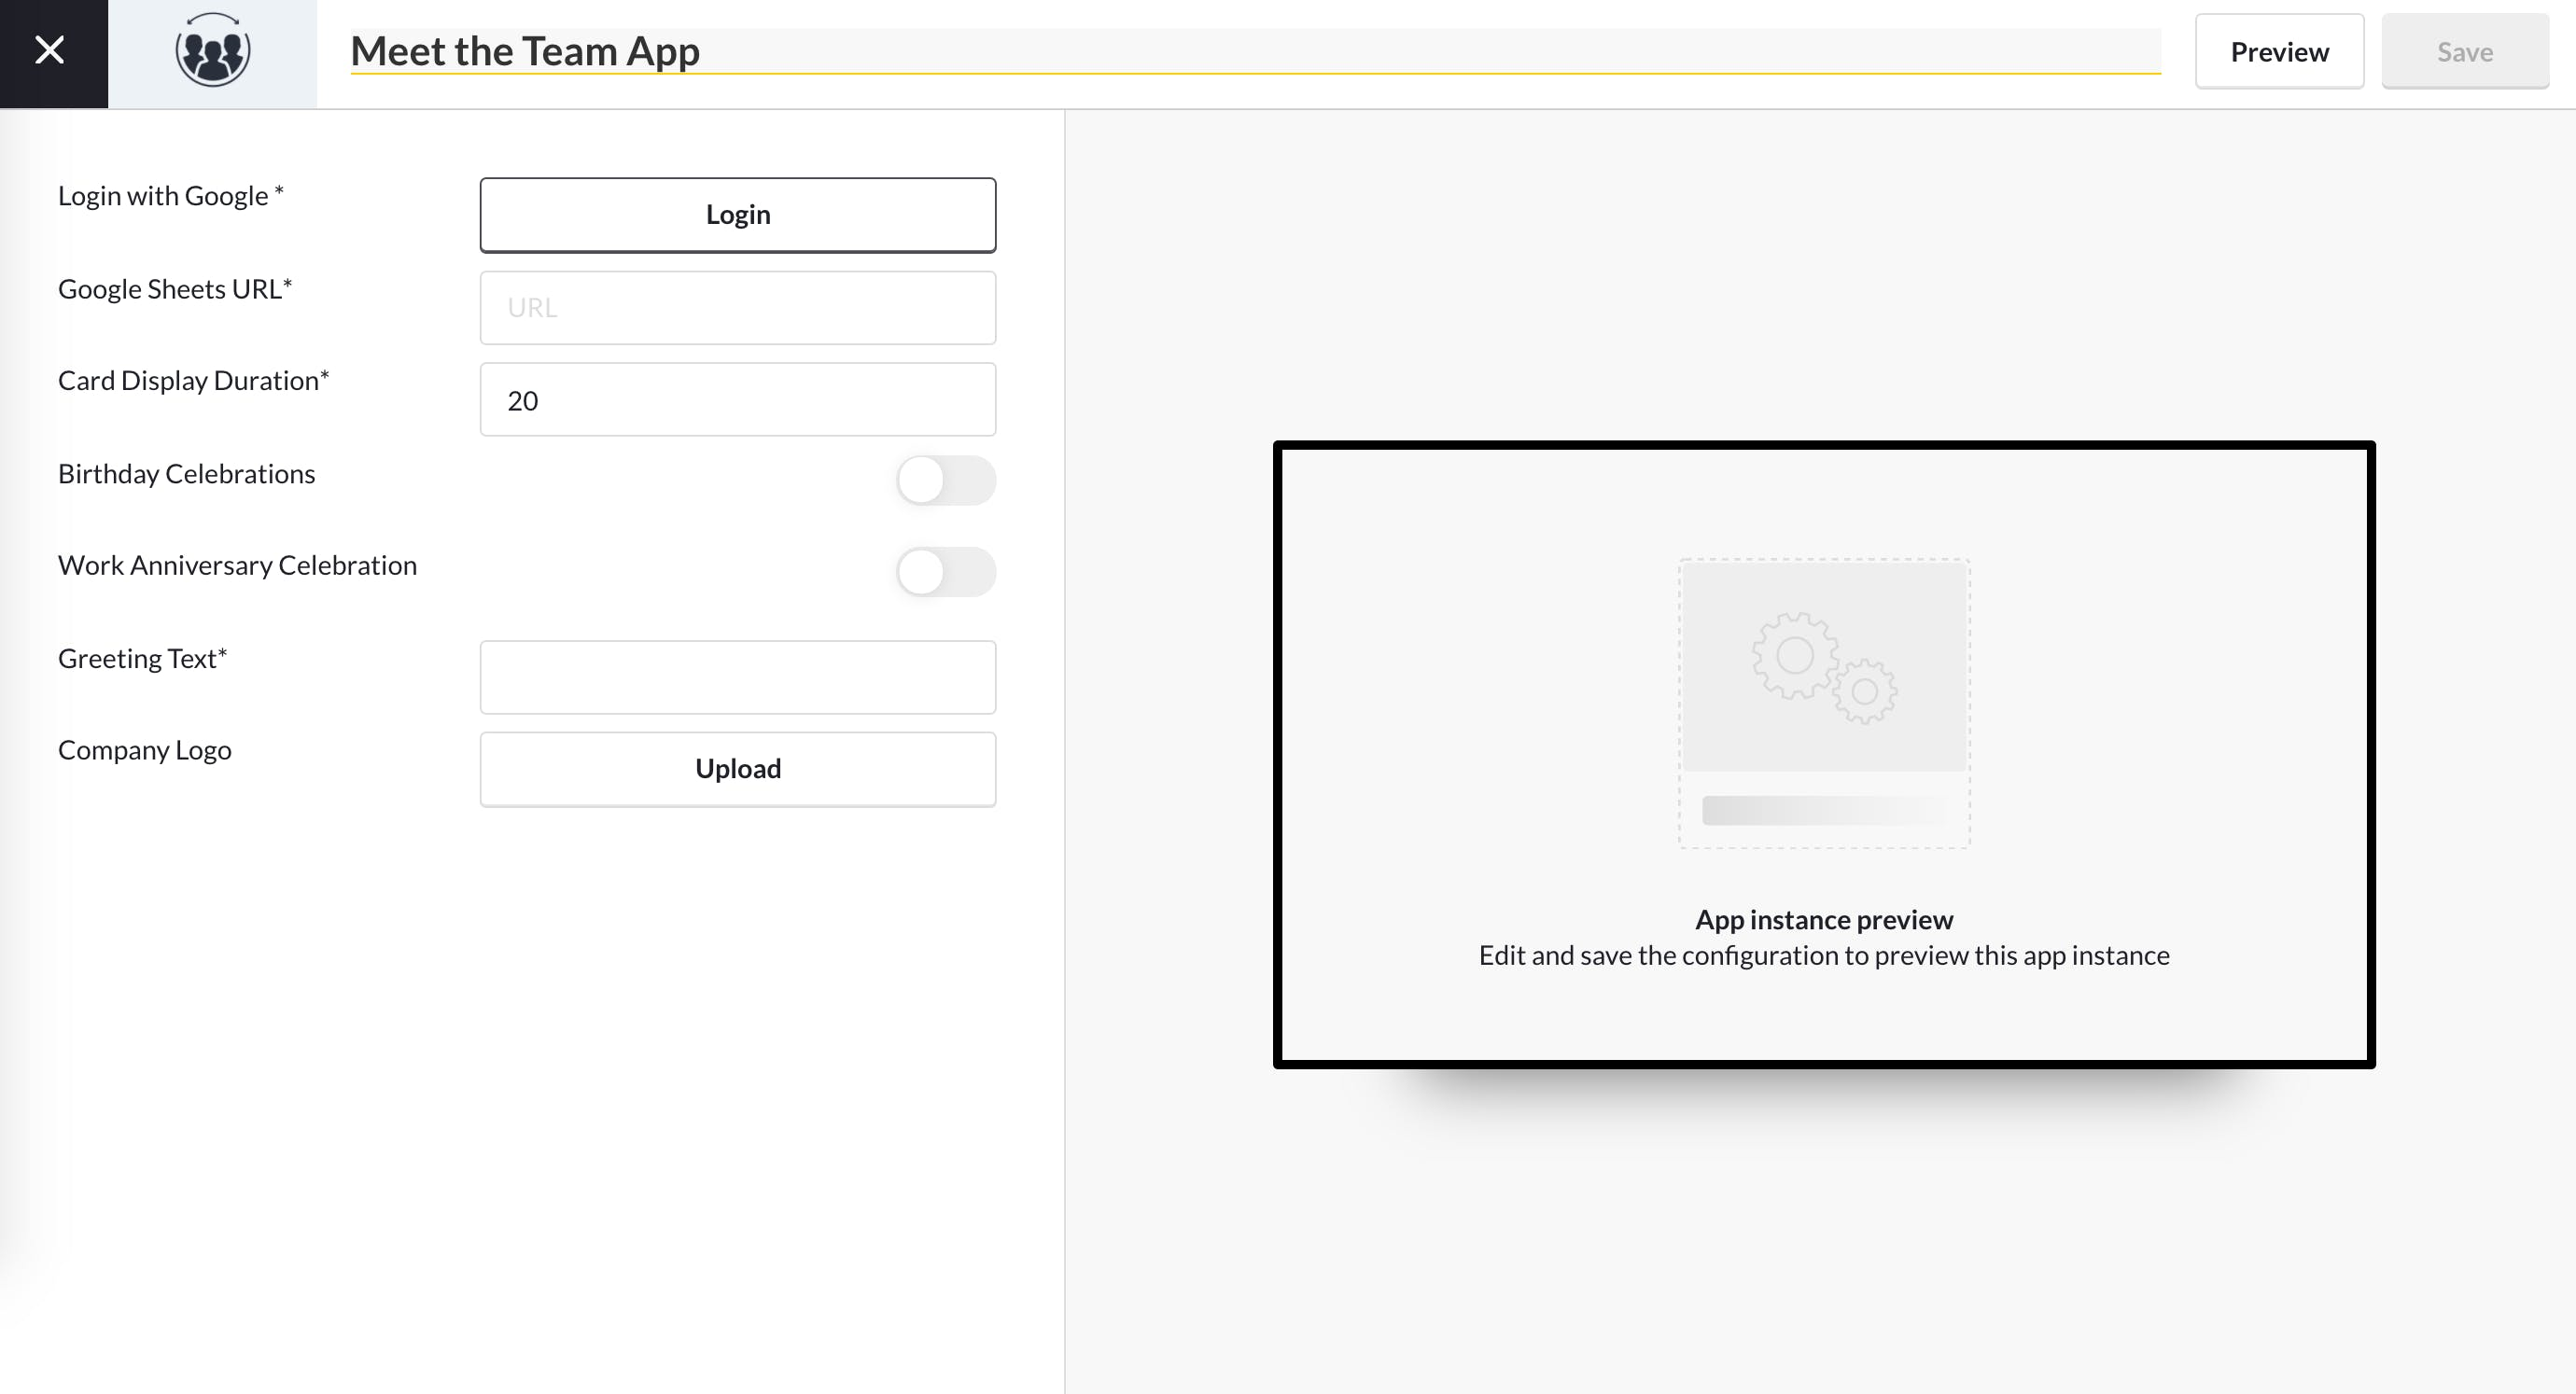 Meet the team App Guide - Log into Google 5.13.2020.png